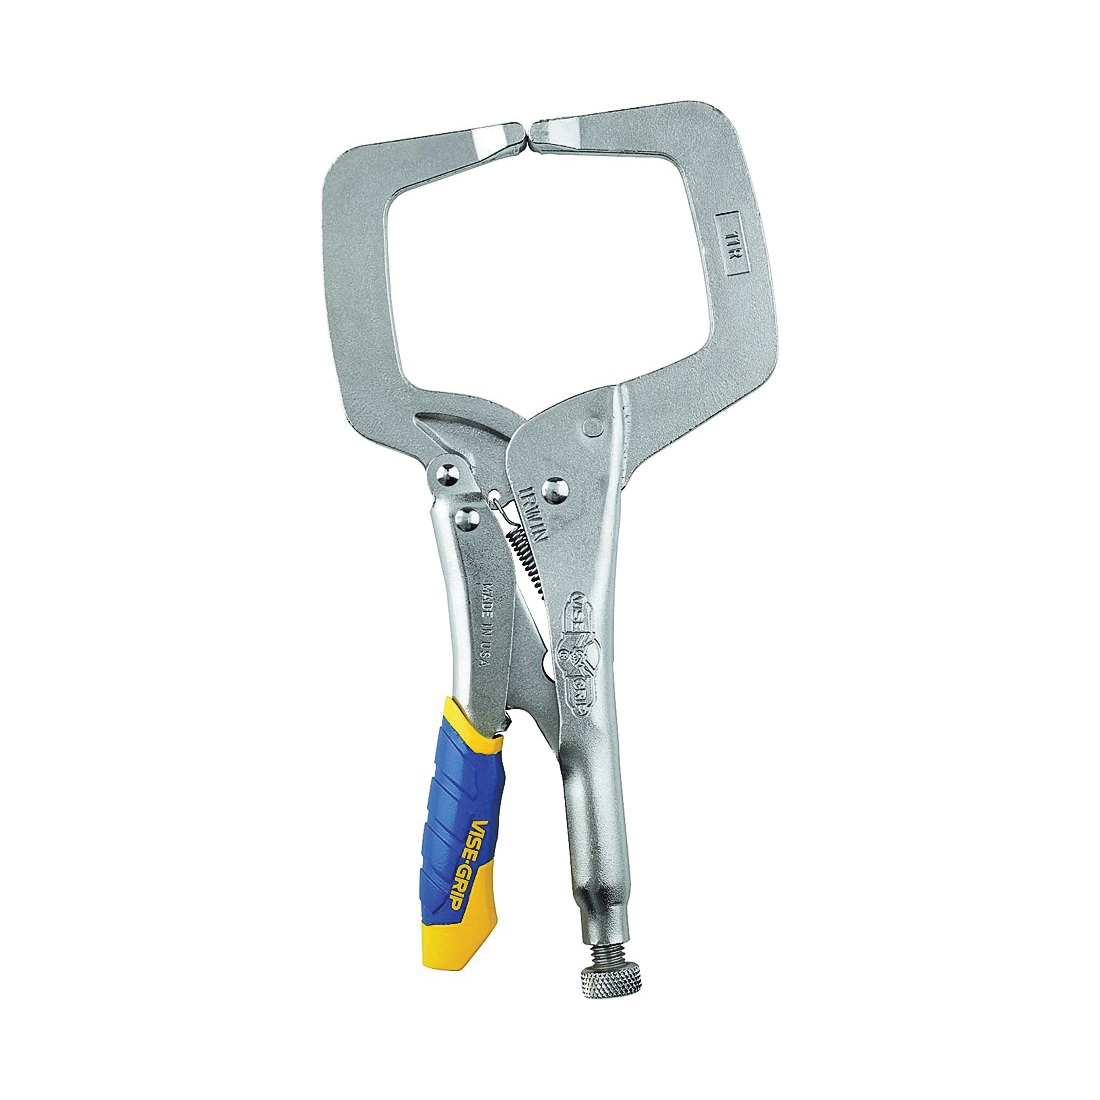 Picture of IRWIN 19T C-Clamp, 2500 lb Clamping, 3-3/8 in Max Opening Size, 2-5/8 in D Throat, Steel Body